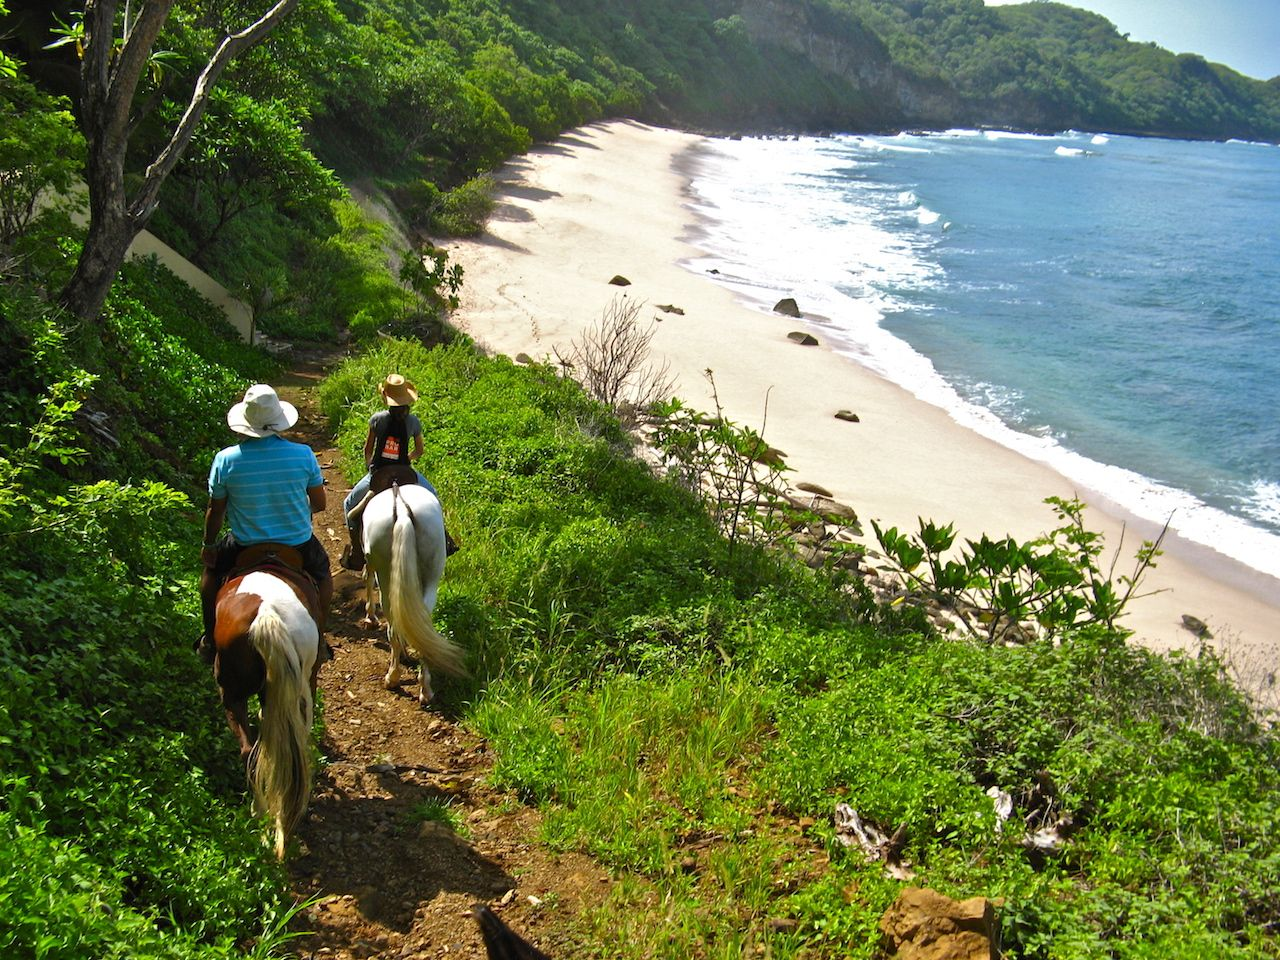 Two people riding horses through the greenery just off a Nicaraguan beach